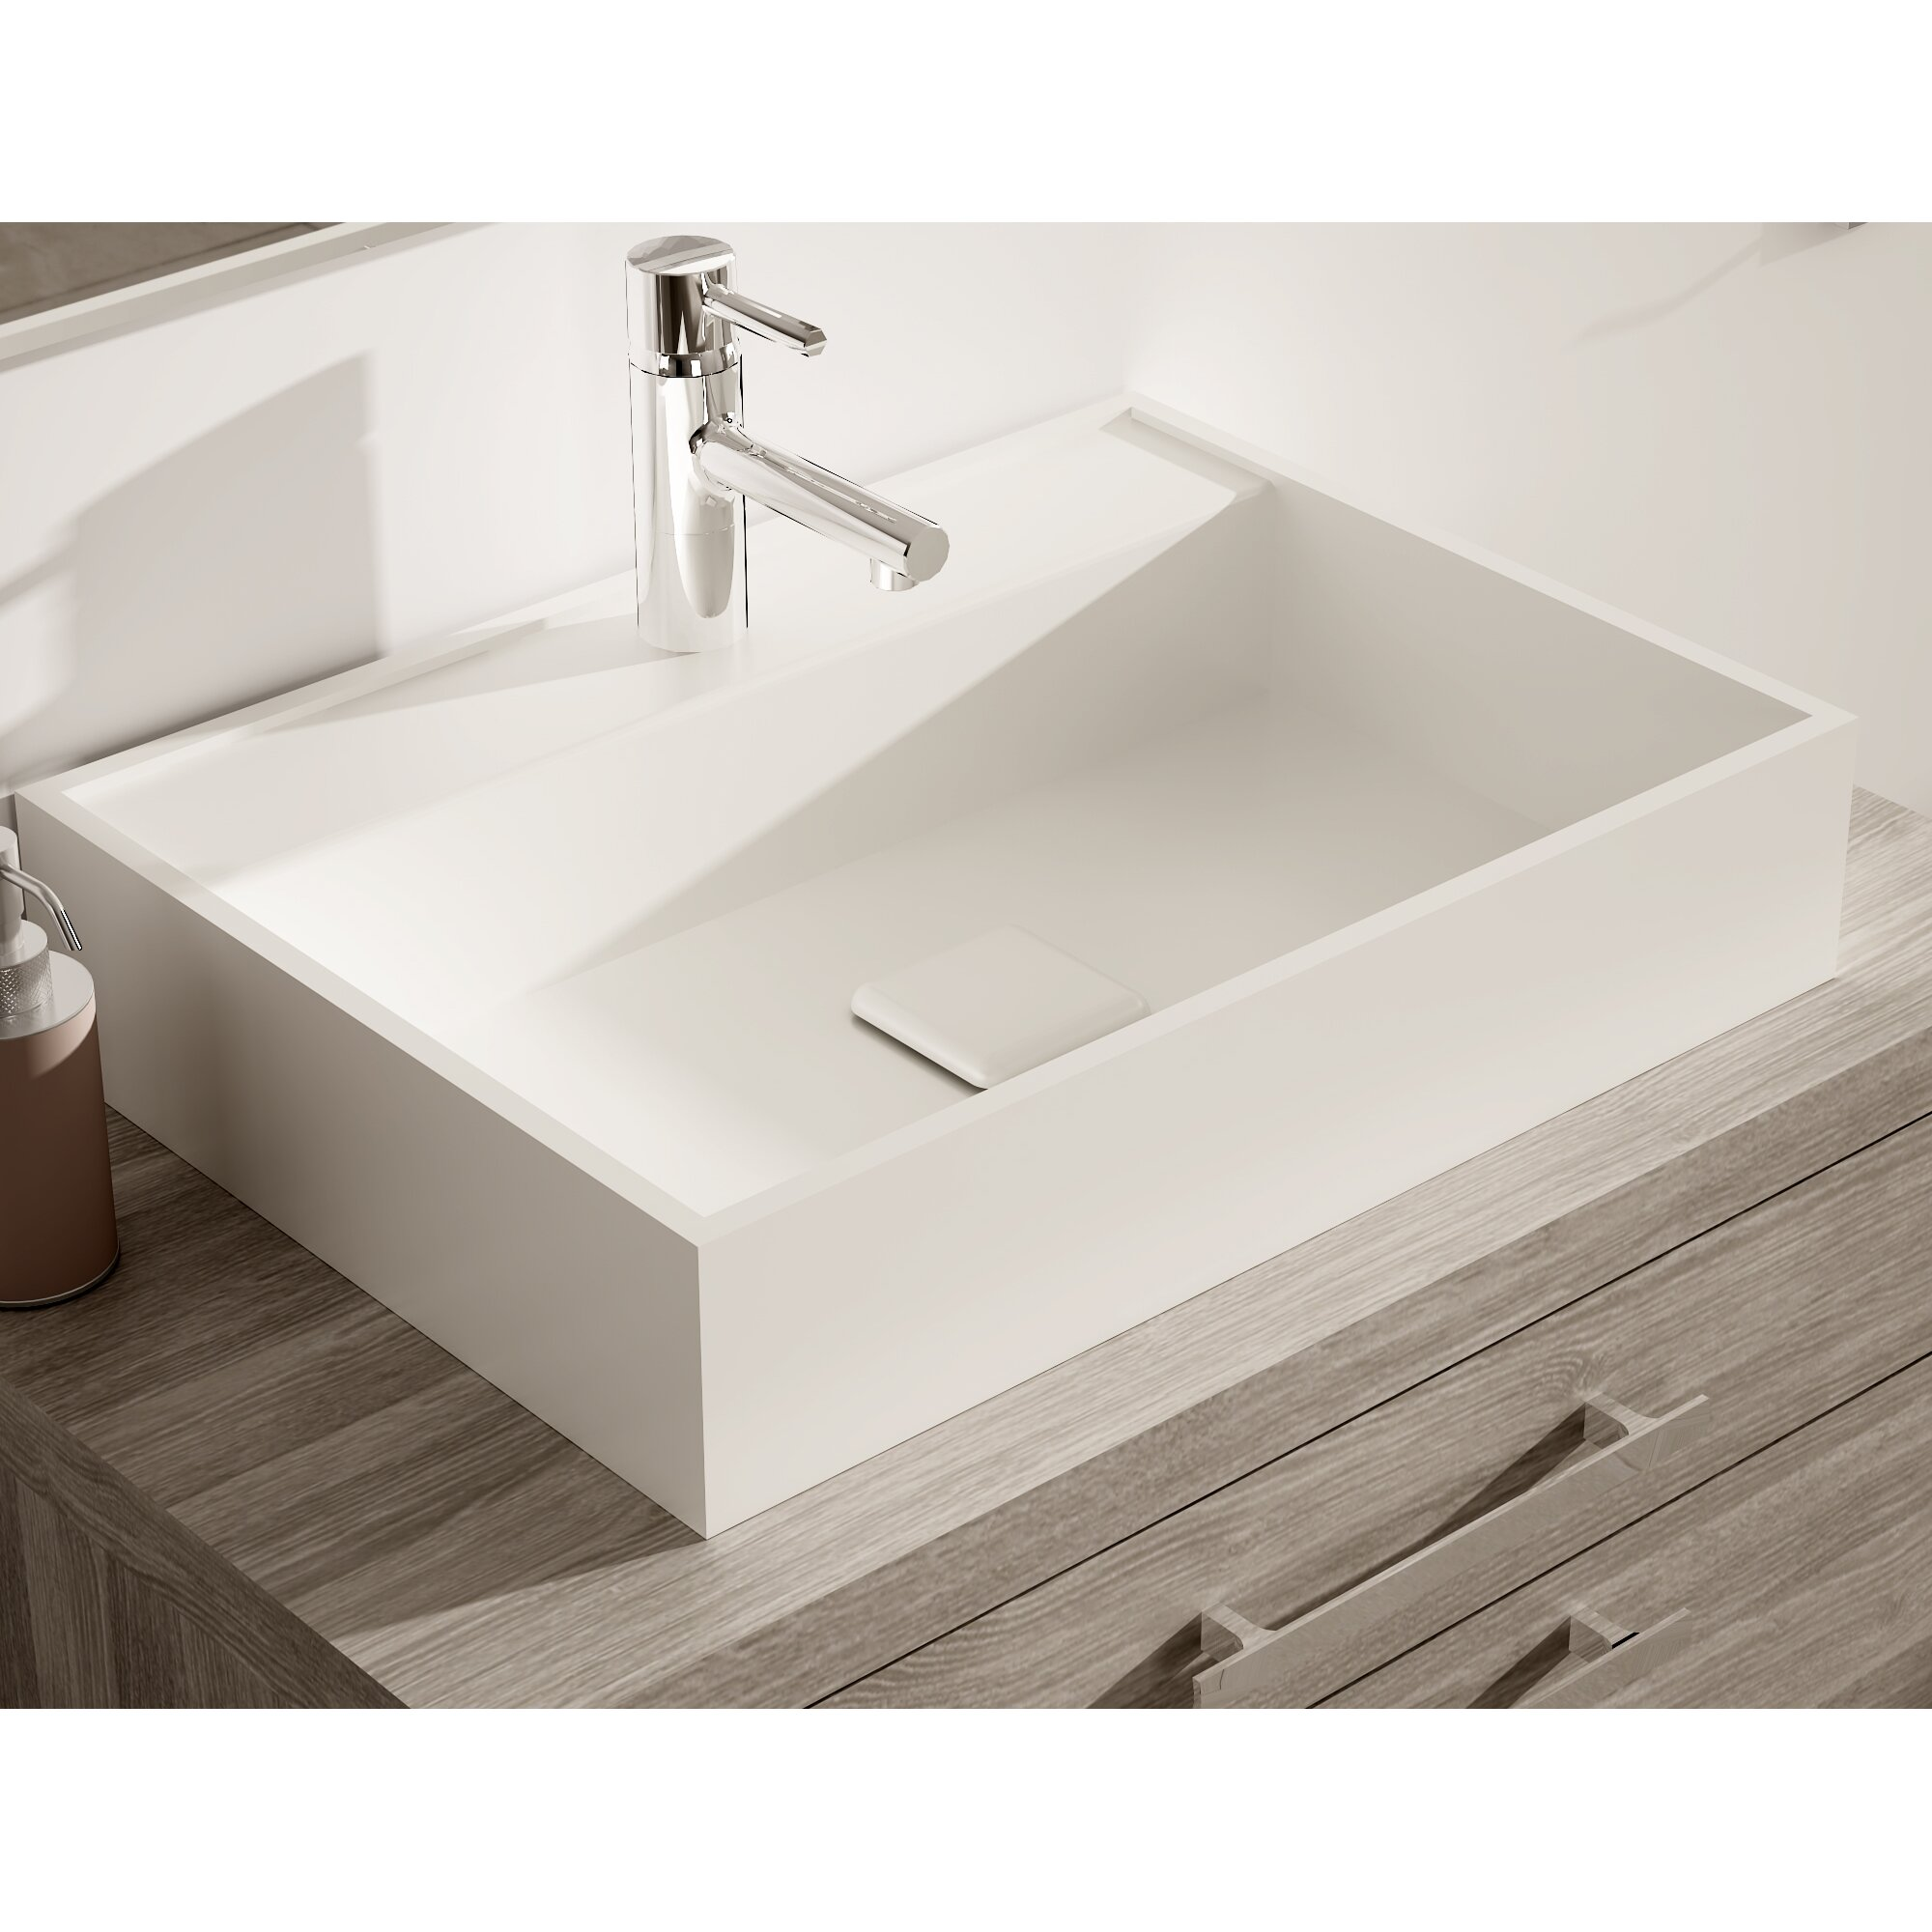 "Solid Surface Bathroom Sink: Hispania Home Montreal 24"" Single Solid Surface Sink"